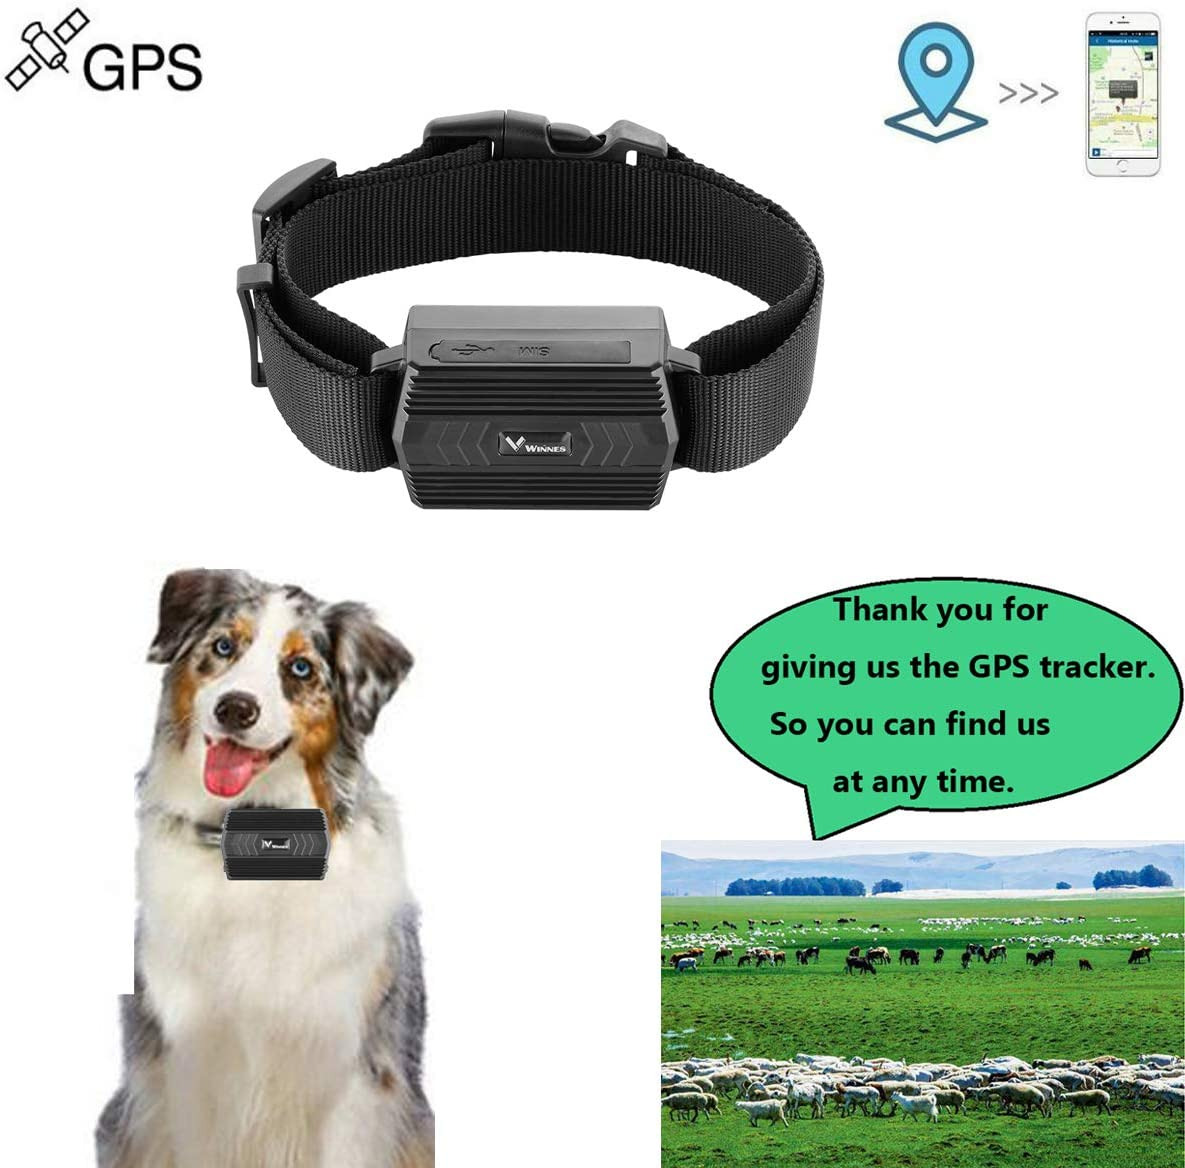 2G, SIM Not Included Waterproof Real Time GPS Tracker Locator with Collar for Cattle Cow Sheep Horse Camel 90 Days Long Standby Time Support APP GPS Tracker for Large Animals